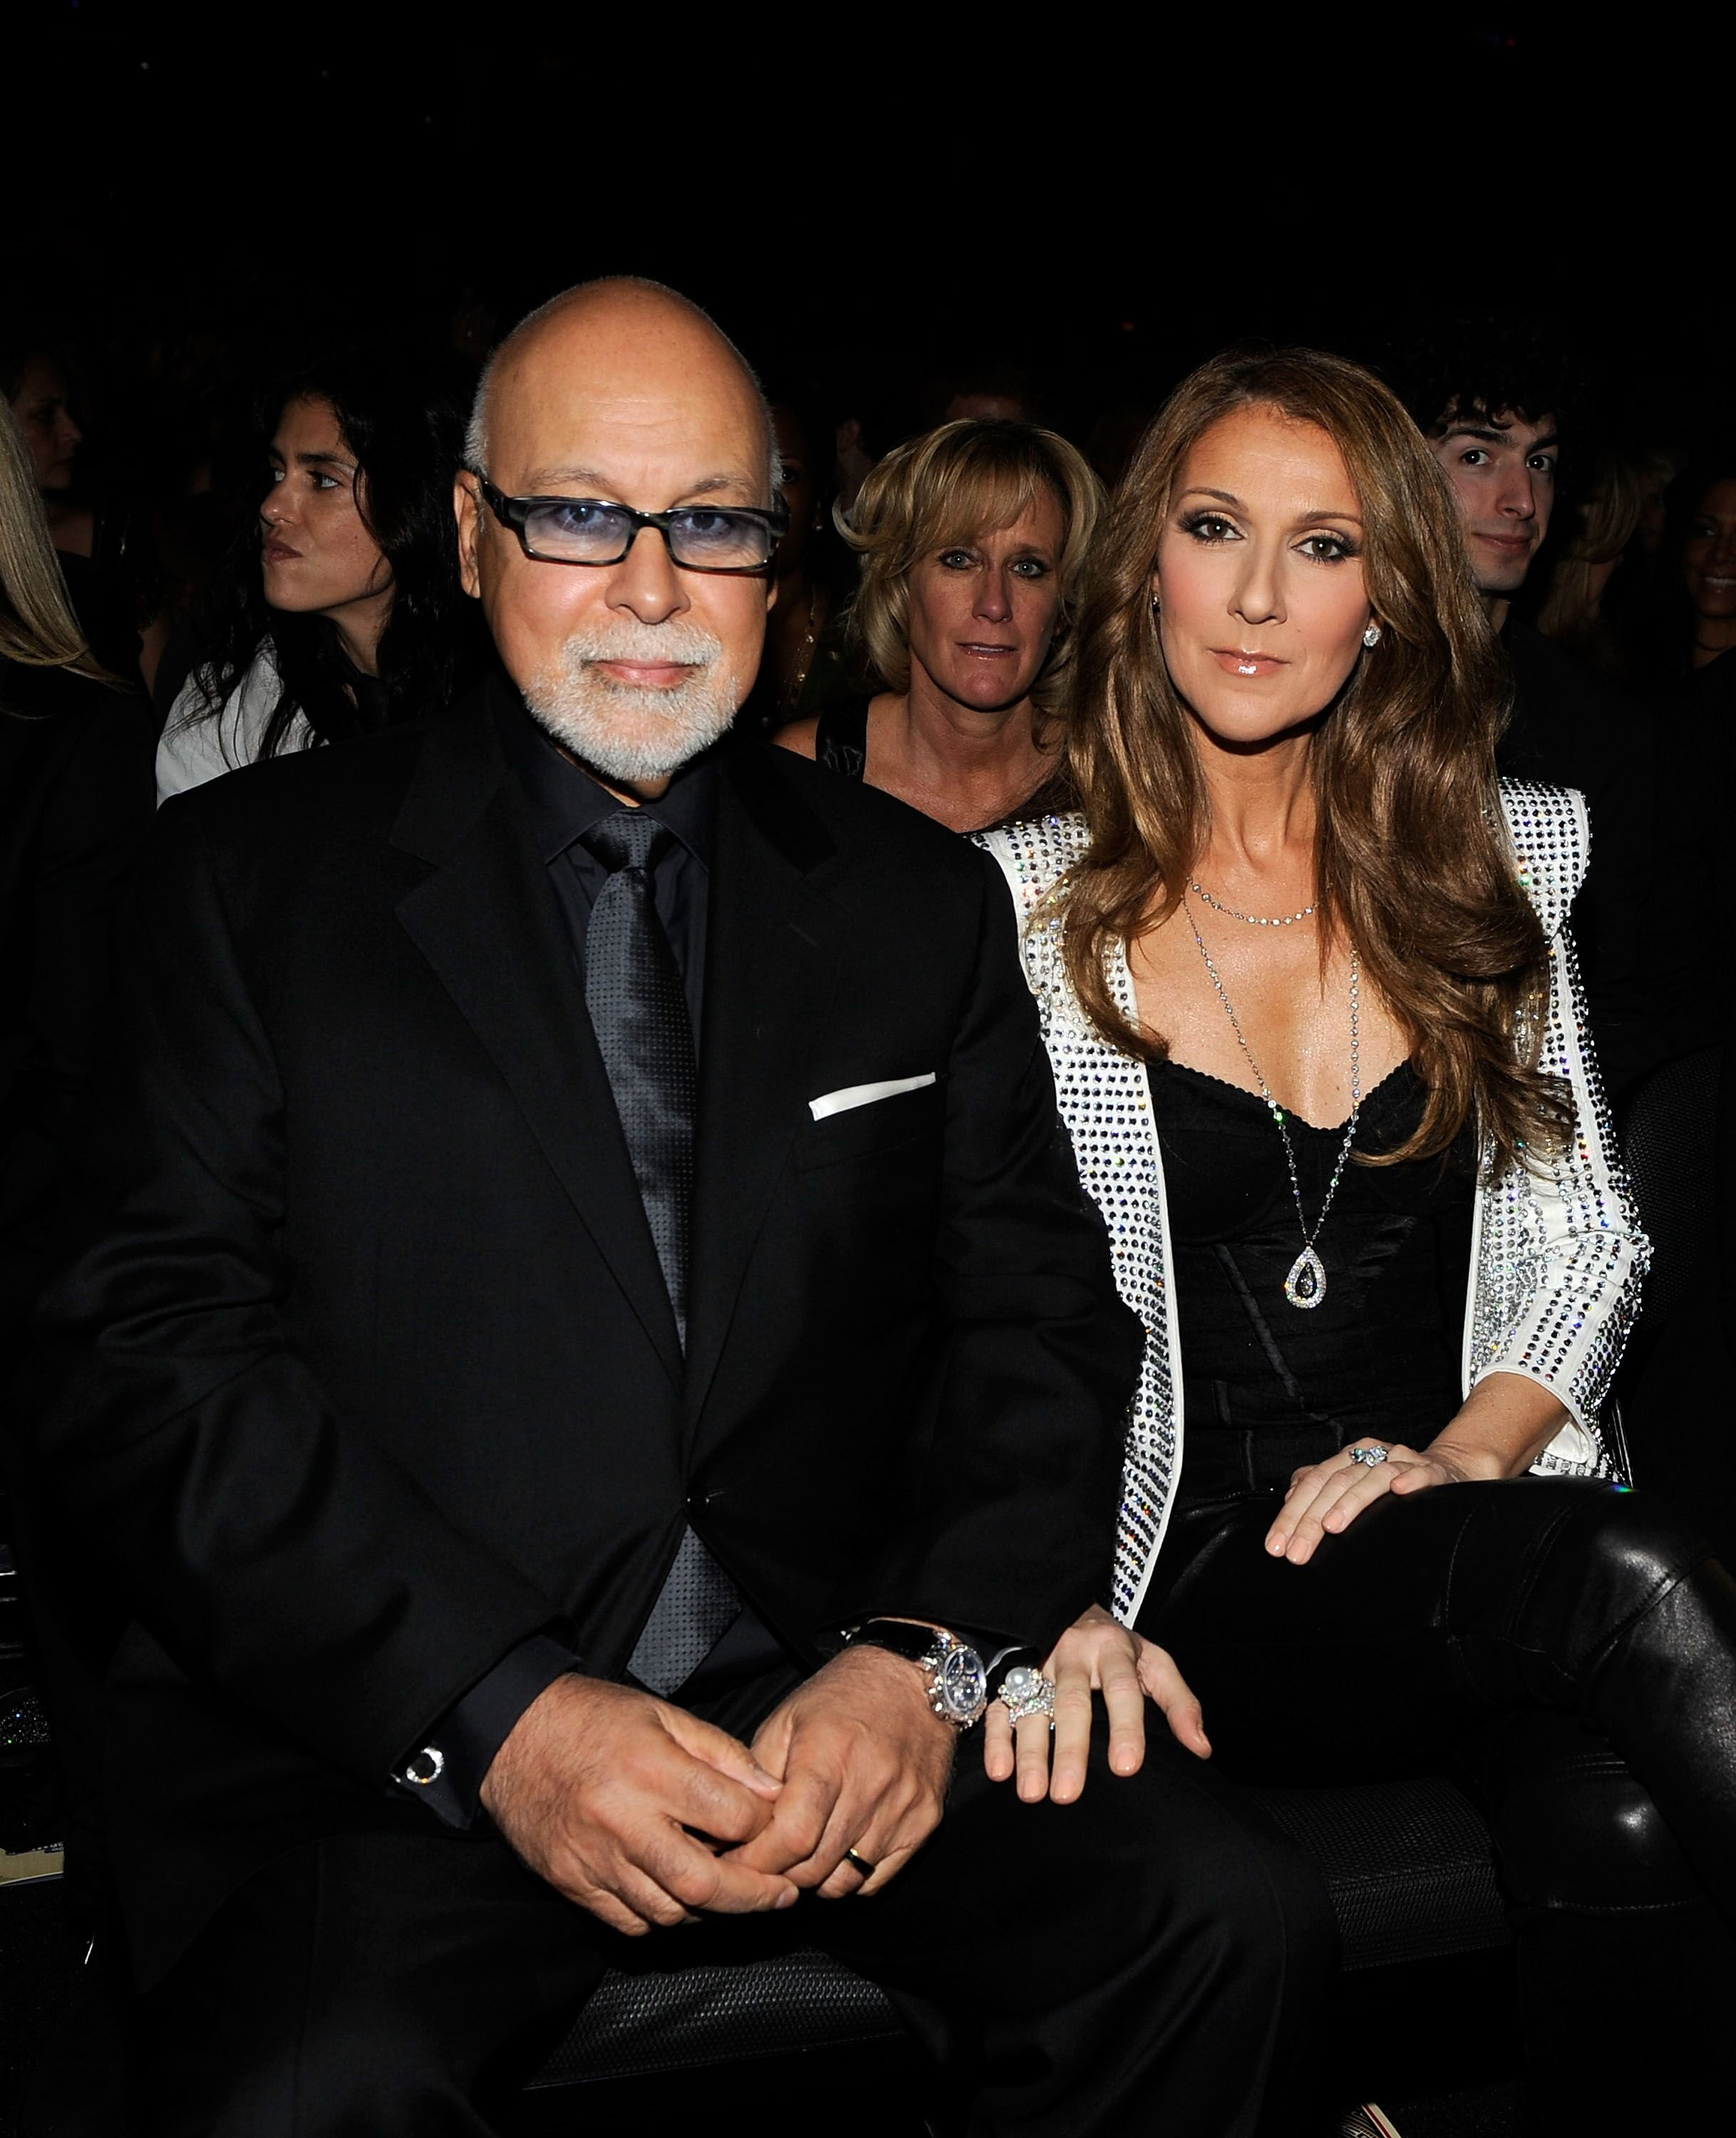 Celine Dion and Rene Angelil in the audience during the 52nd Annual GRAMMY Awards held at Staples Center on January 31, 2010 in Los Angeles, California.   Source: Getty Images